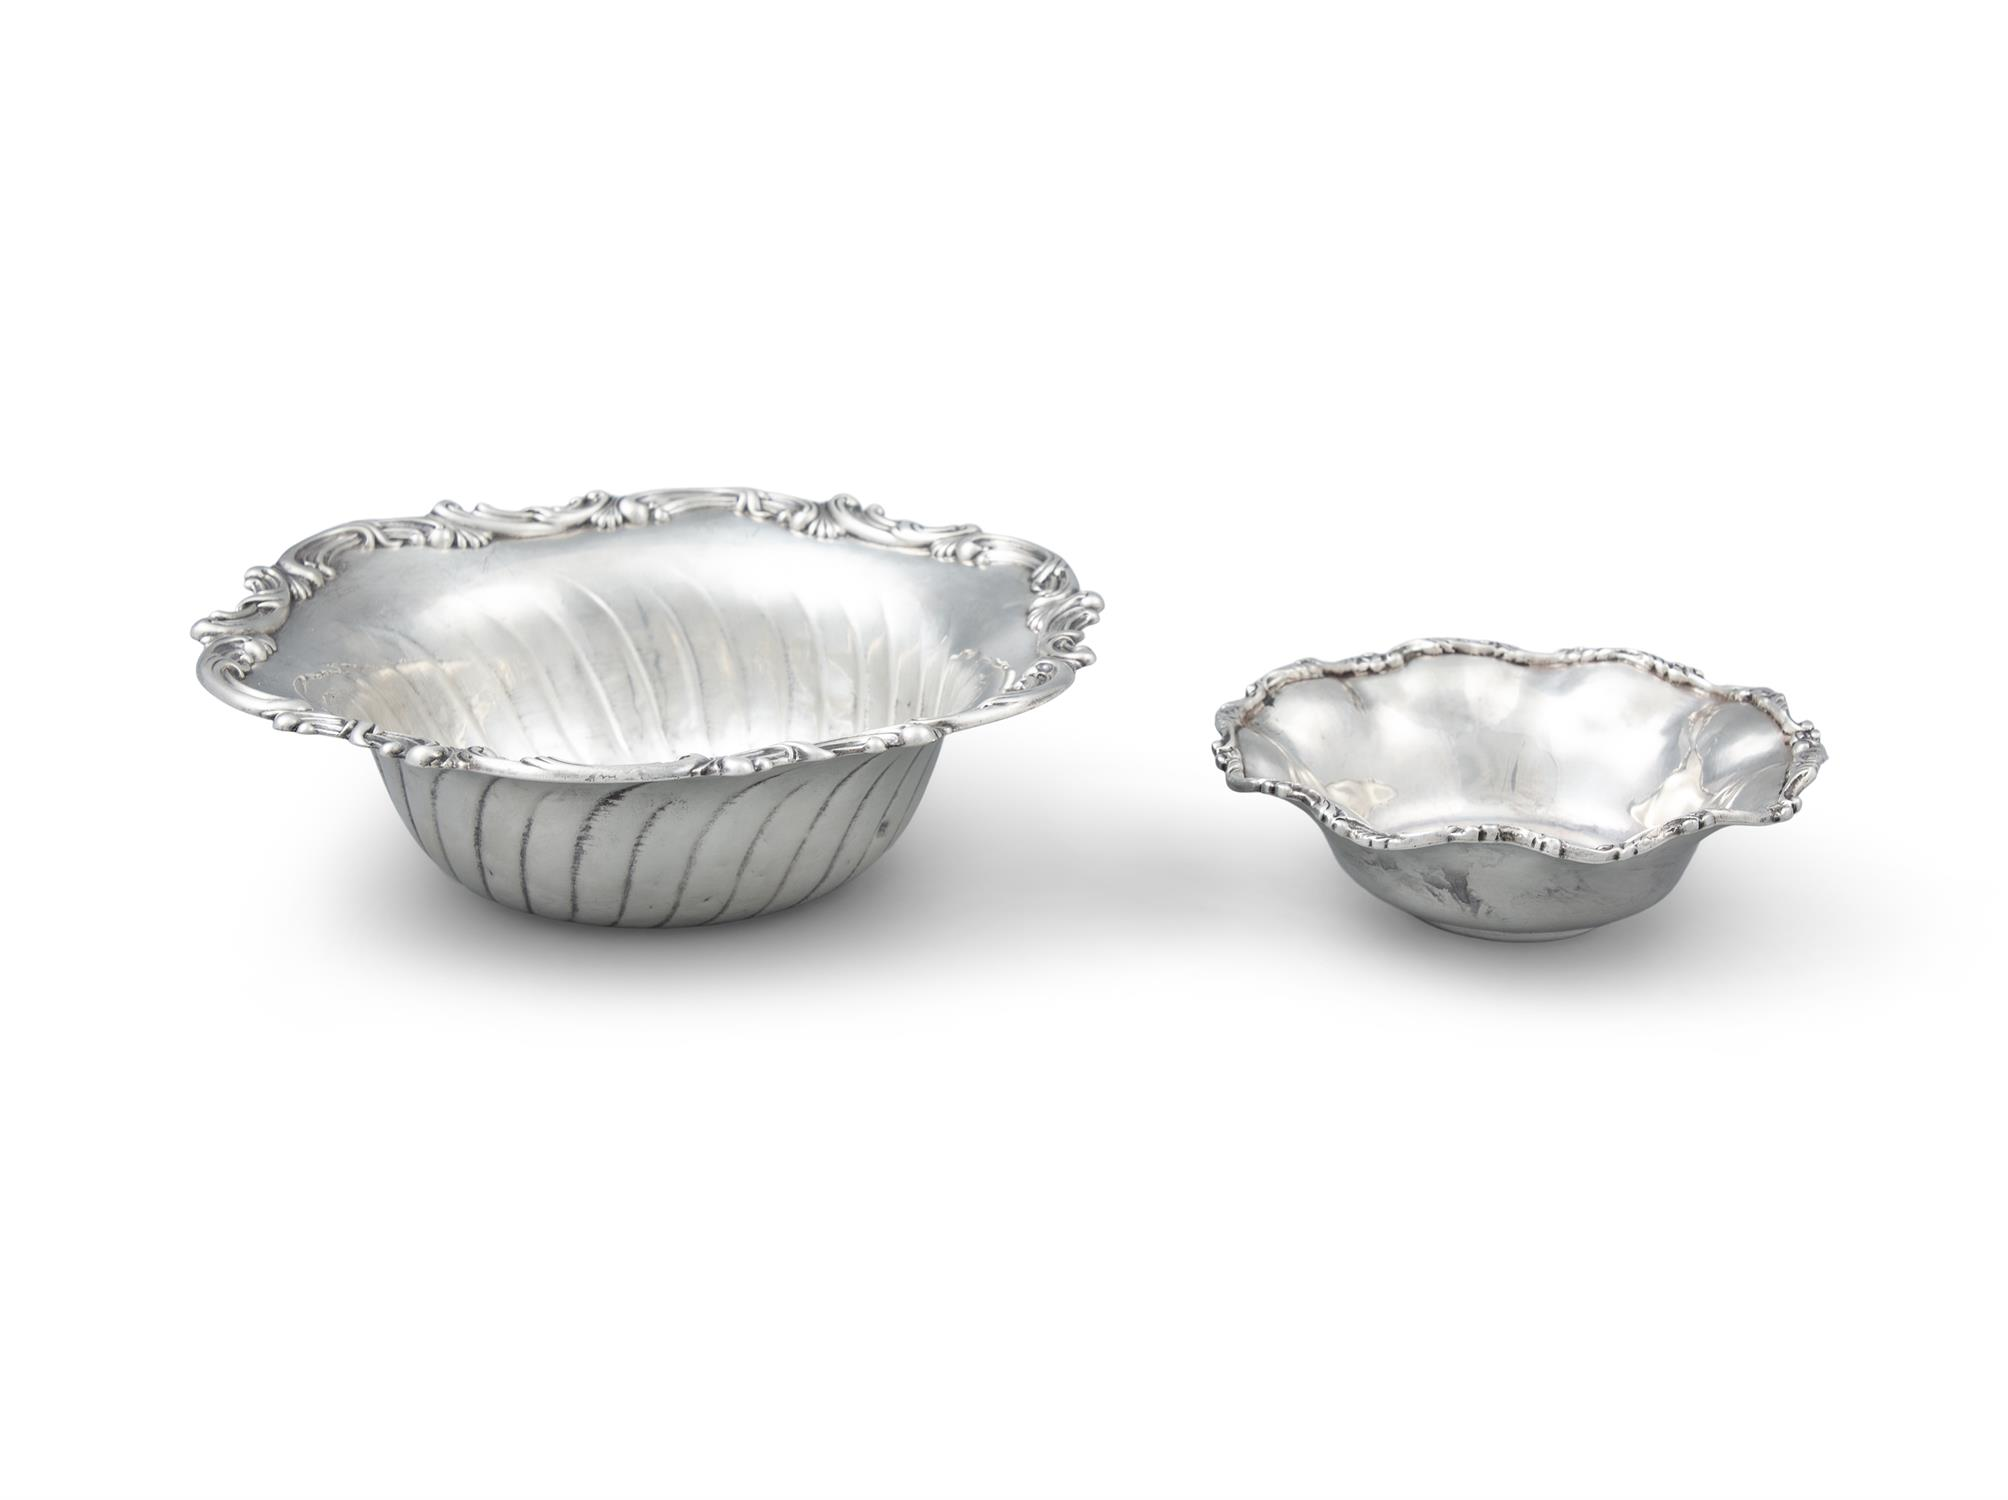 AN AMERICAN SILVER FRUIT BOWL, late 19th Century by Galt & Bros of Washington, of deep circo form - Image 2 of 3